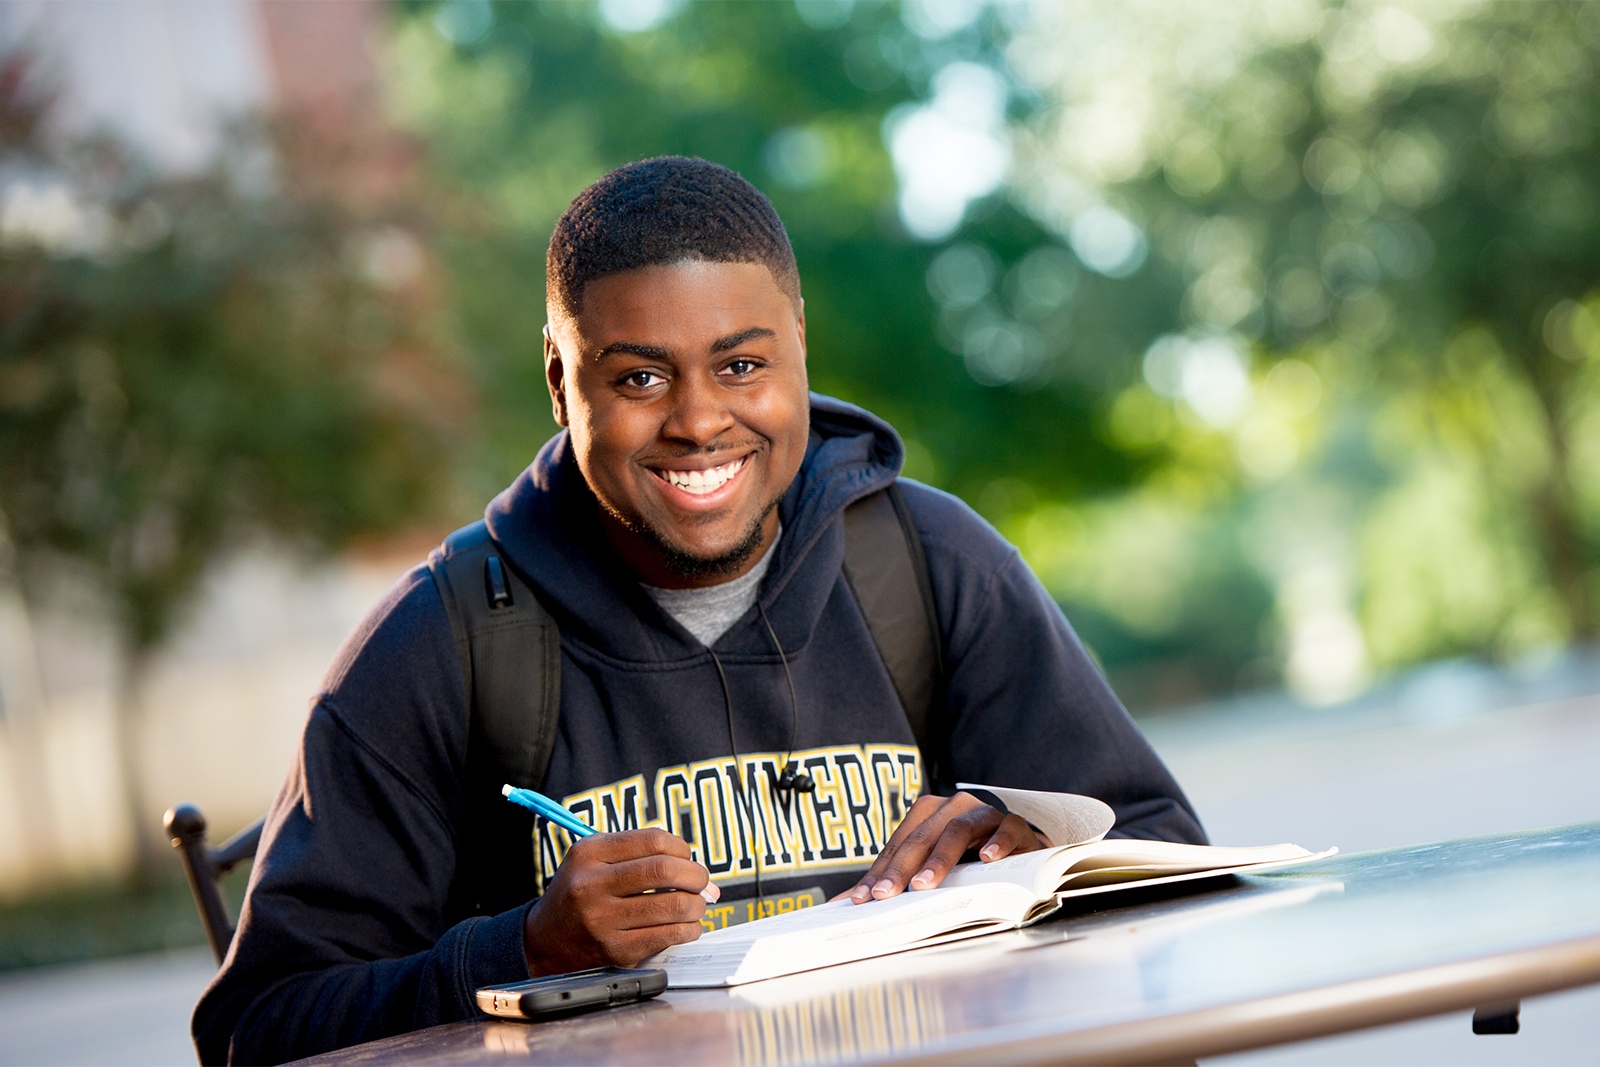 Student smiling siting at a outside table with book in front of him.